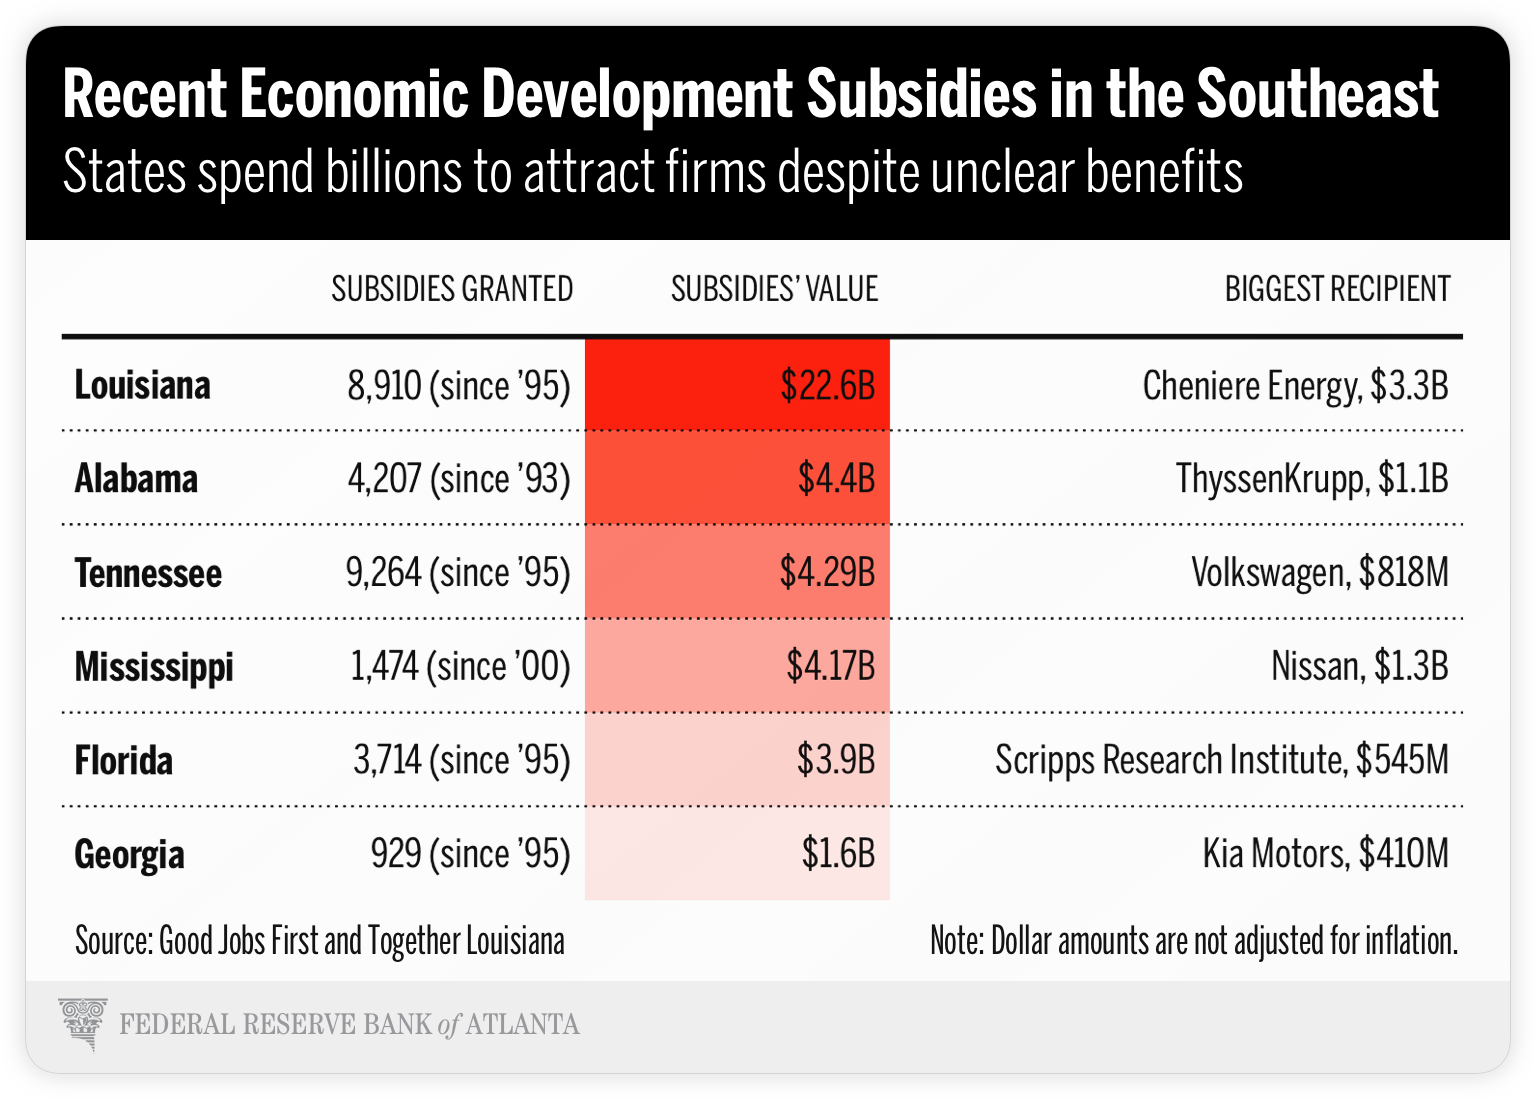 table showing recent economic development subsidies in the Southeast